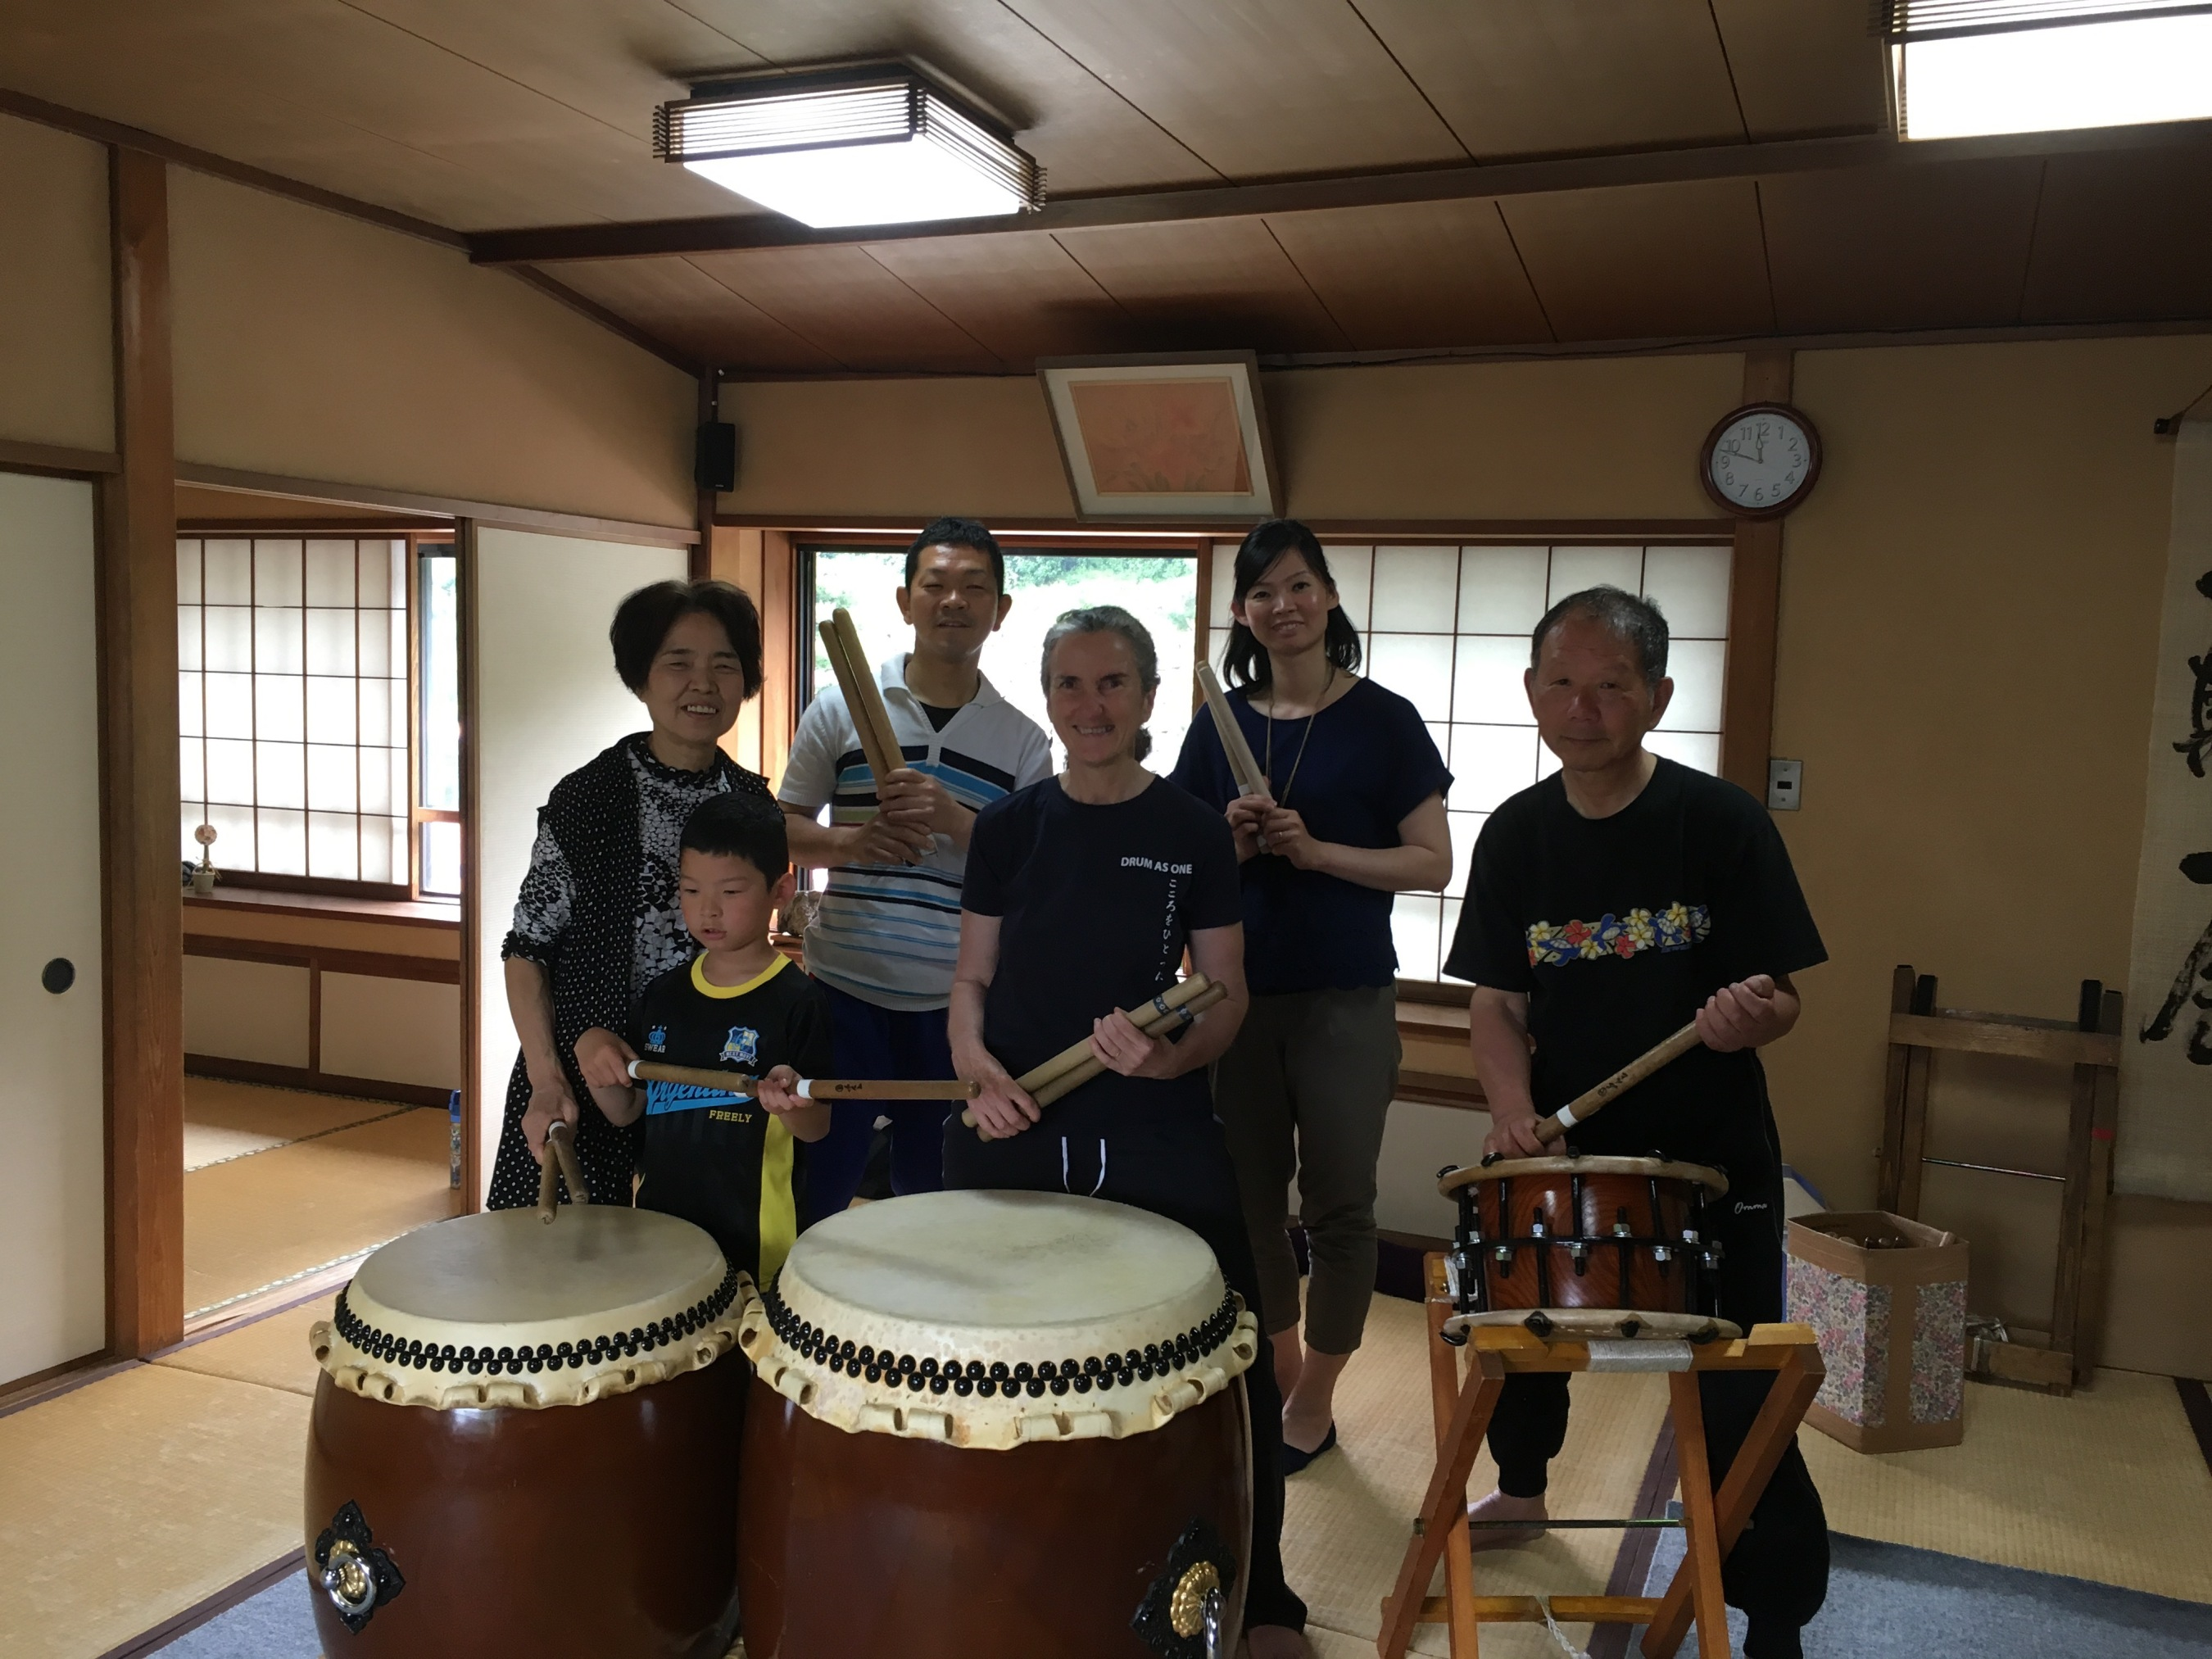 As luck would have it, my first opportunity to practice taiko was lesson only a two minute walk from my apartment. We played a Matsuri (Festival) song together. It was a lot of fun.